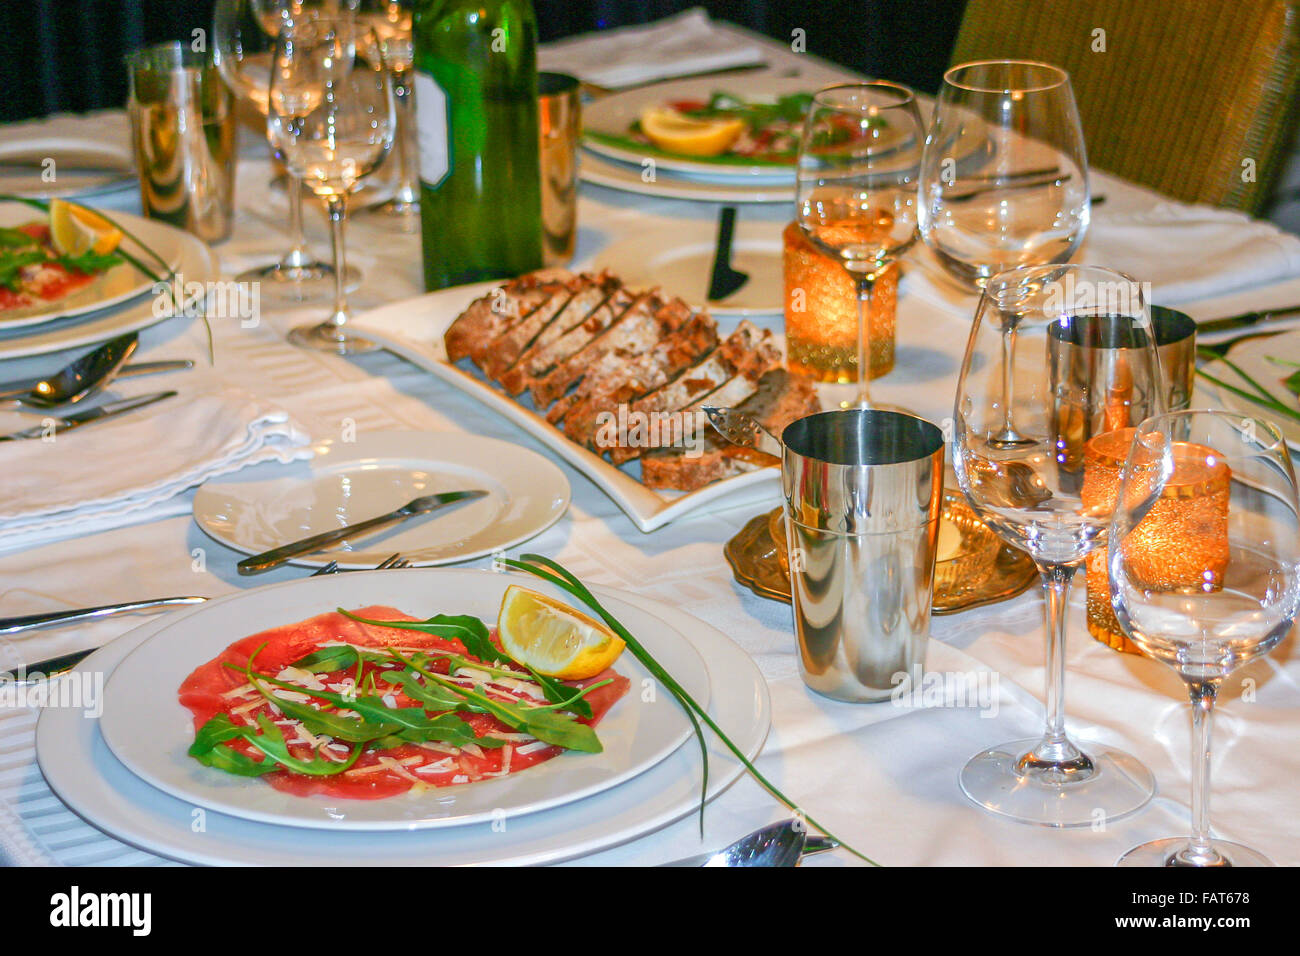 Luxury Dinner Table Place Setting